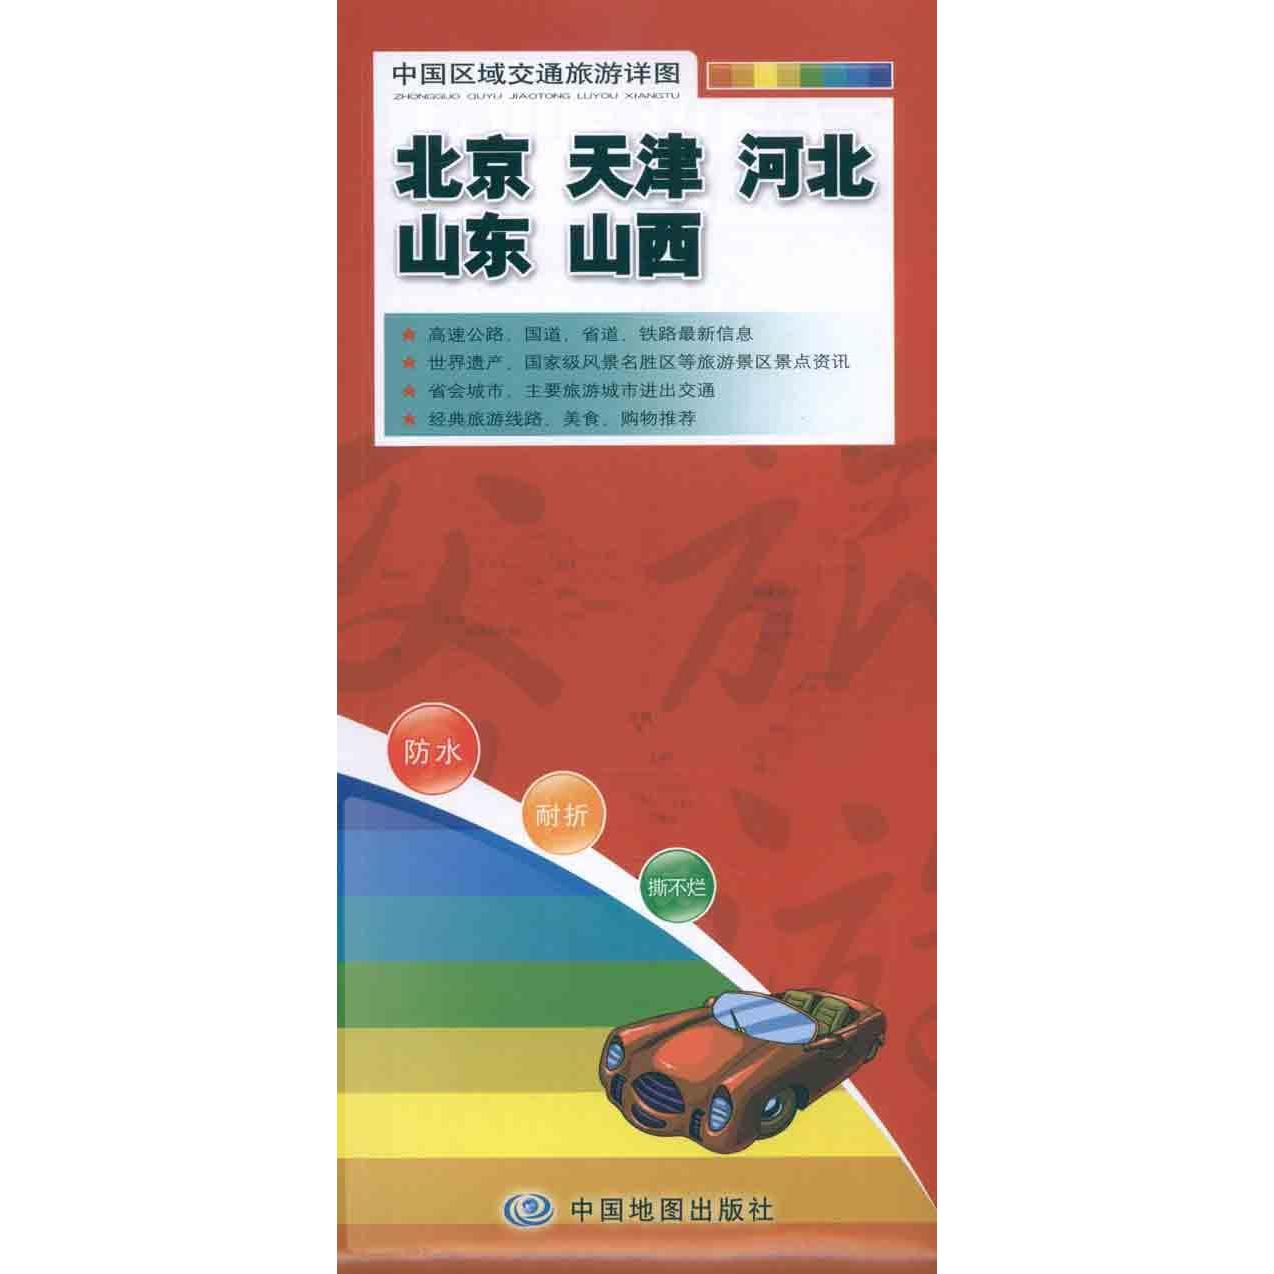 China regional transportation travel detailed map of beijing tianjin hebei and shandong and shanxi selling books books